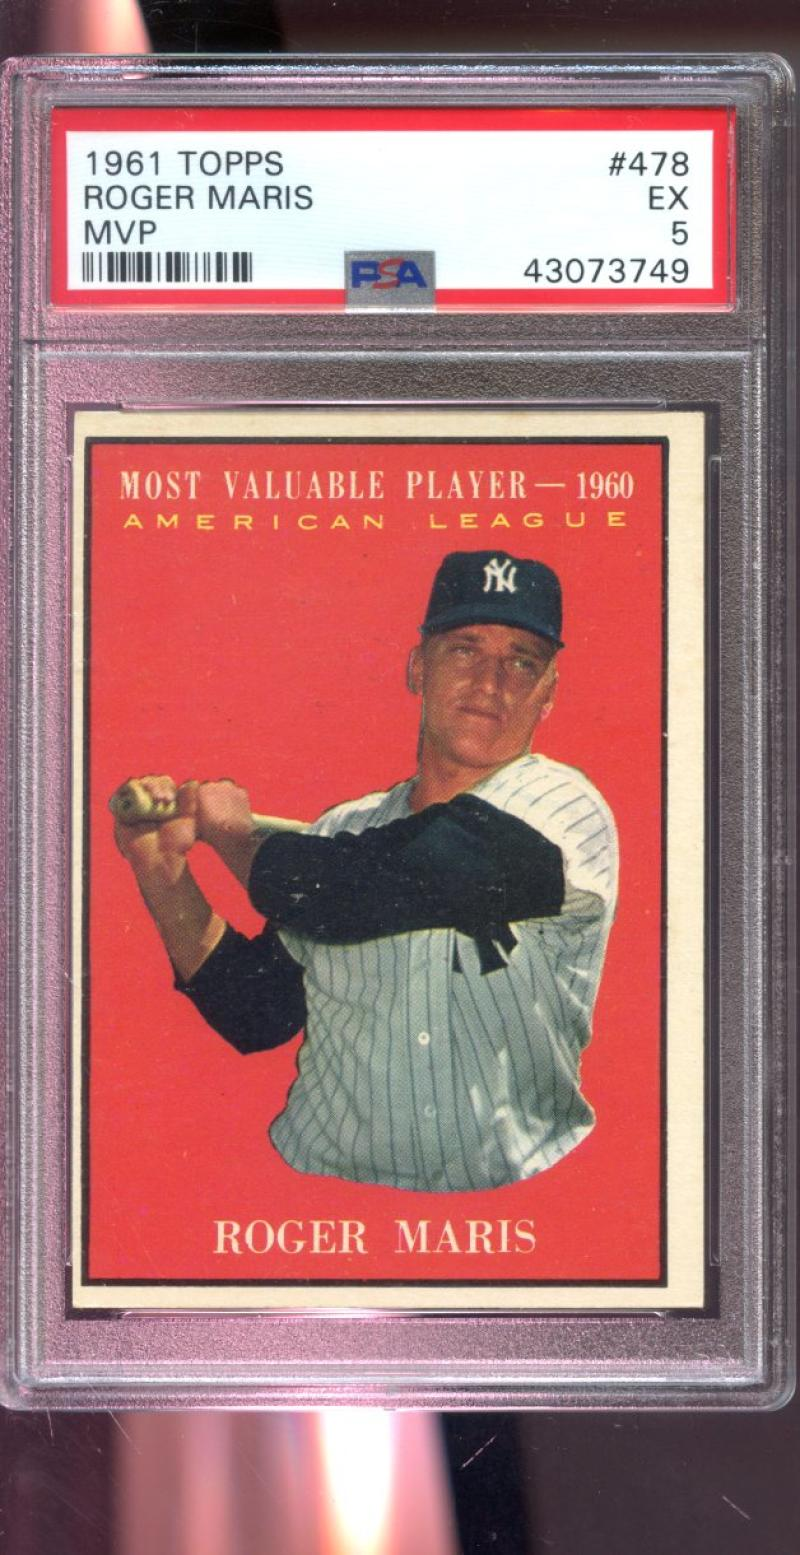 Details About 1961 Topps 478 Roger Maris 1960 Mvp Most Valuable Player Mlb Psa 5 Graded Card